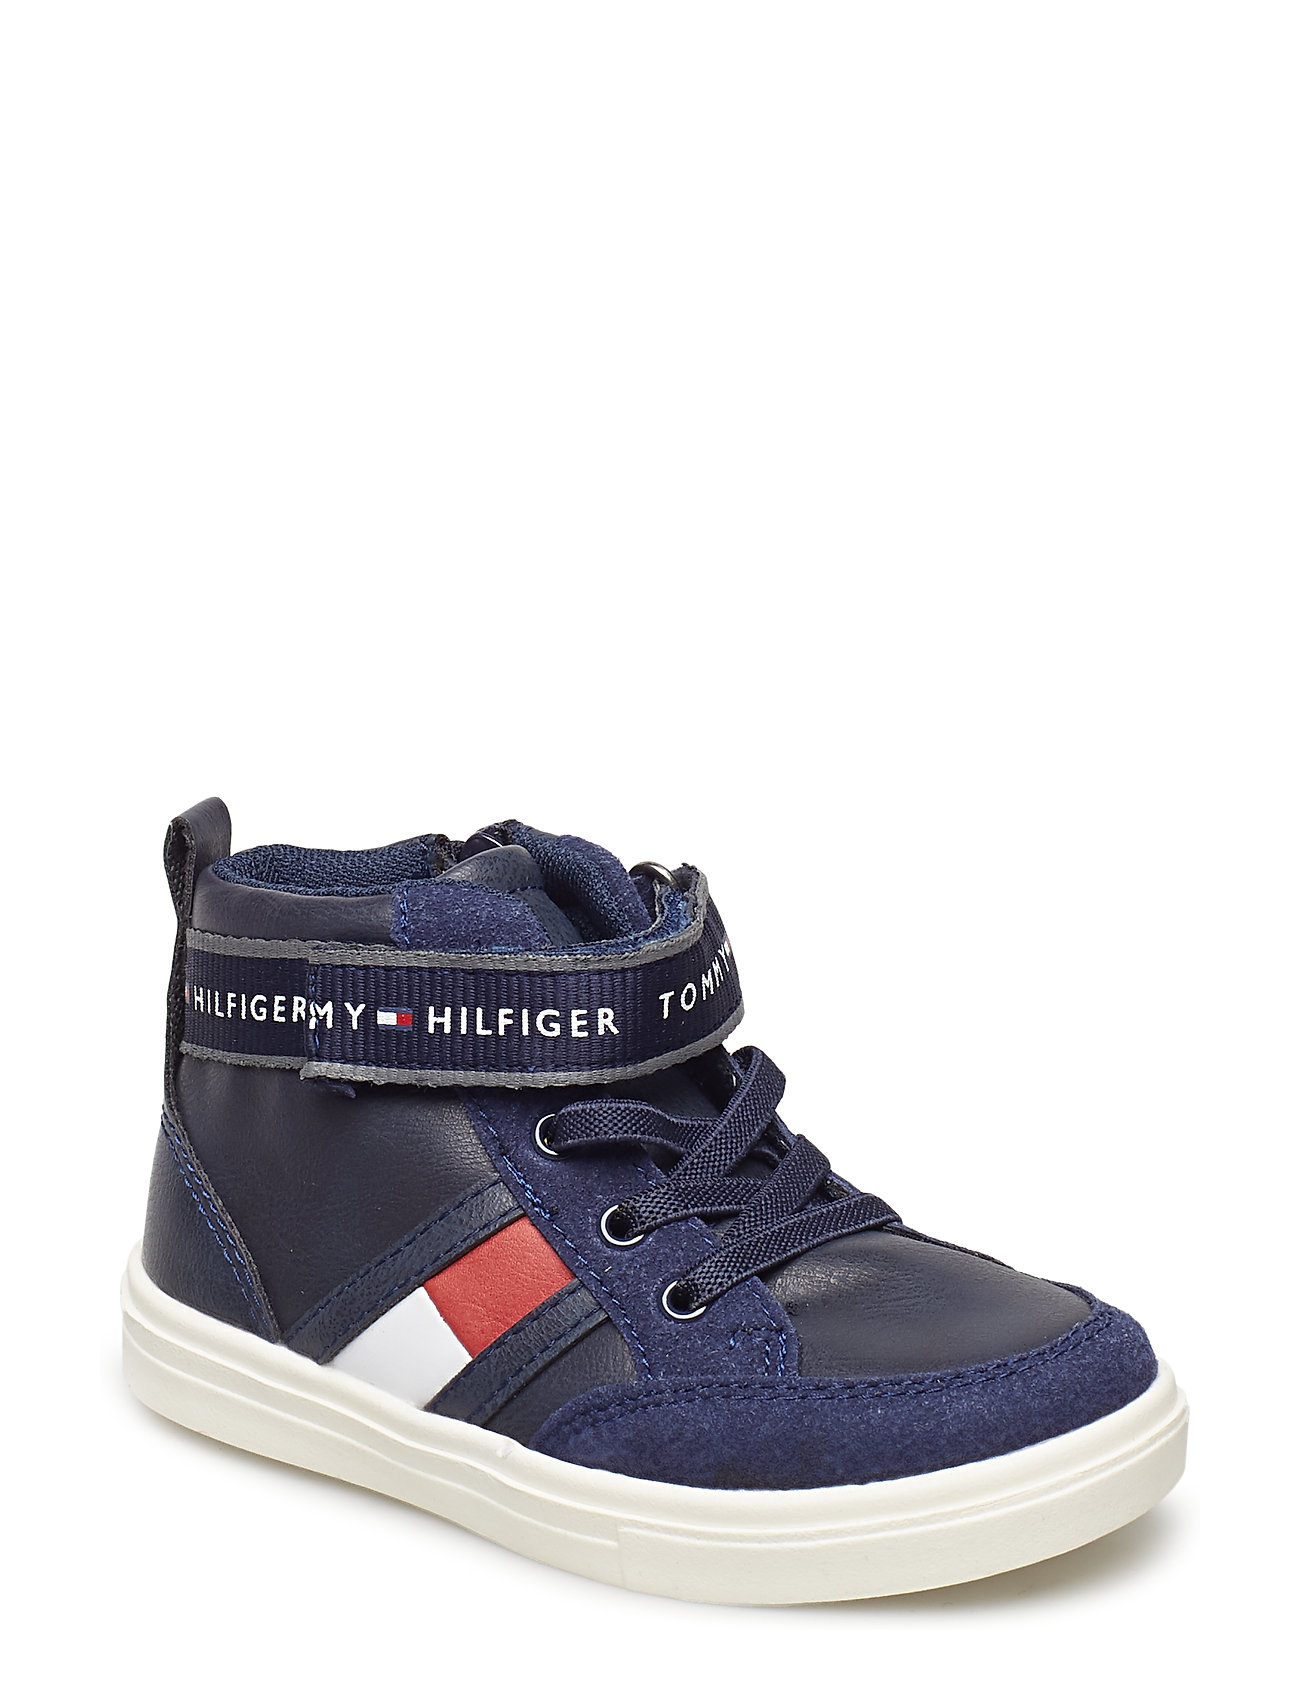 Tommy Hilfiger LACE-UP/VELCRO HIGH TOP SNEAKR